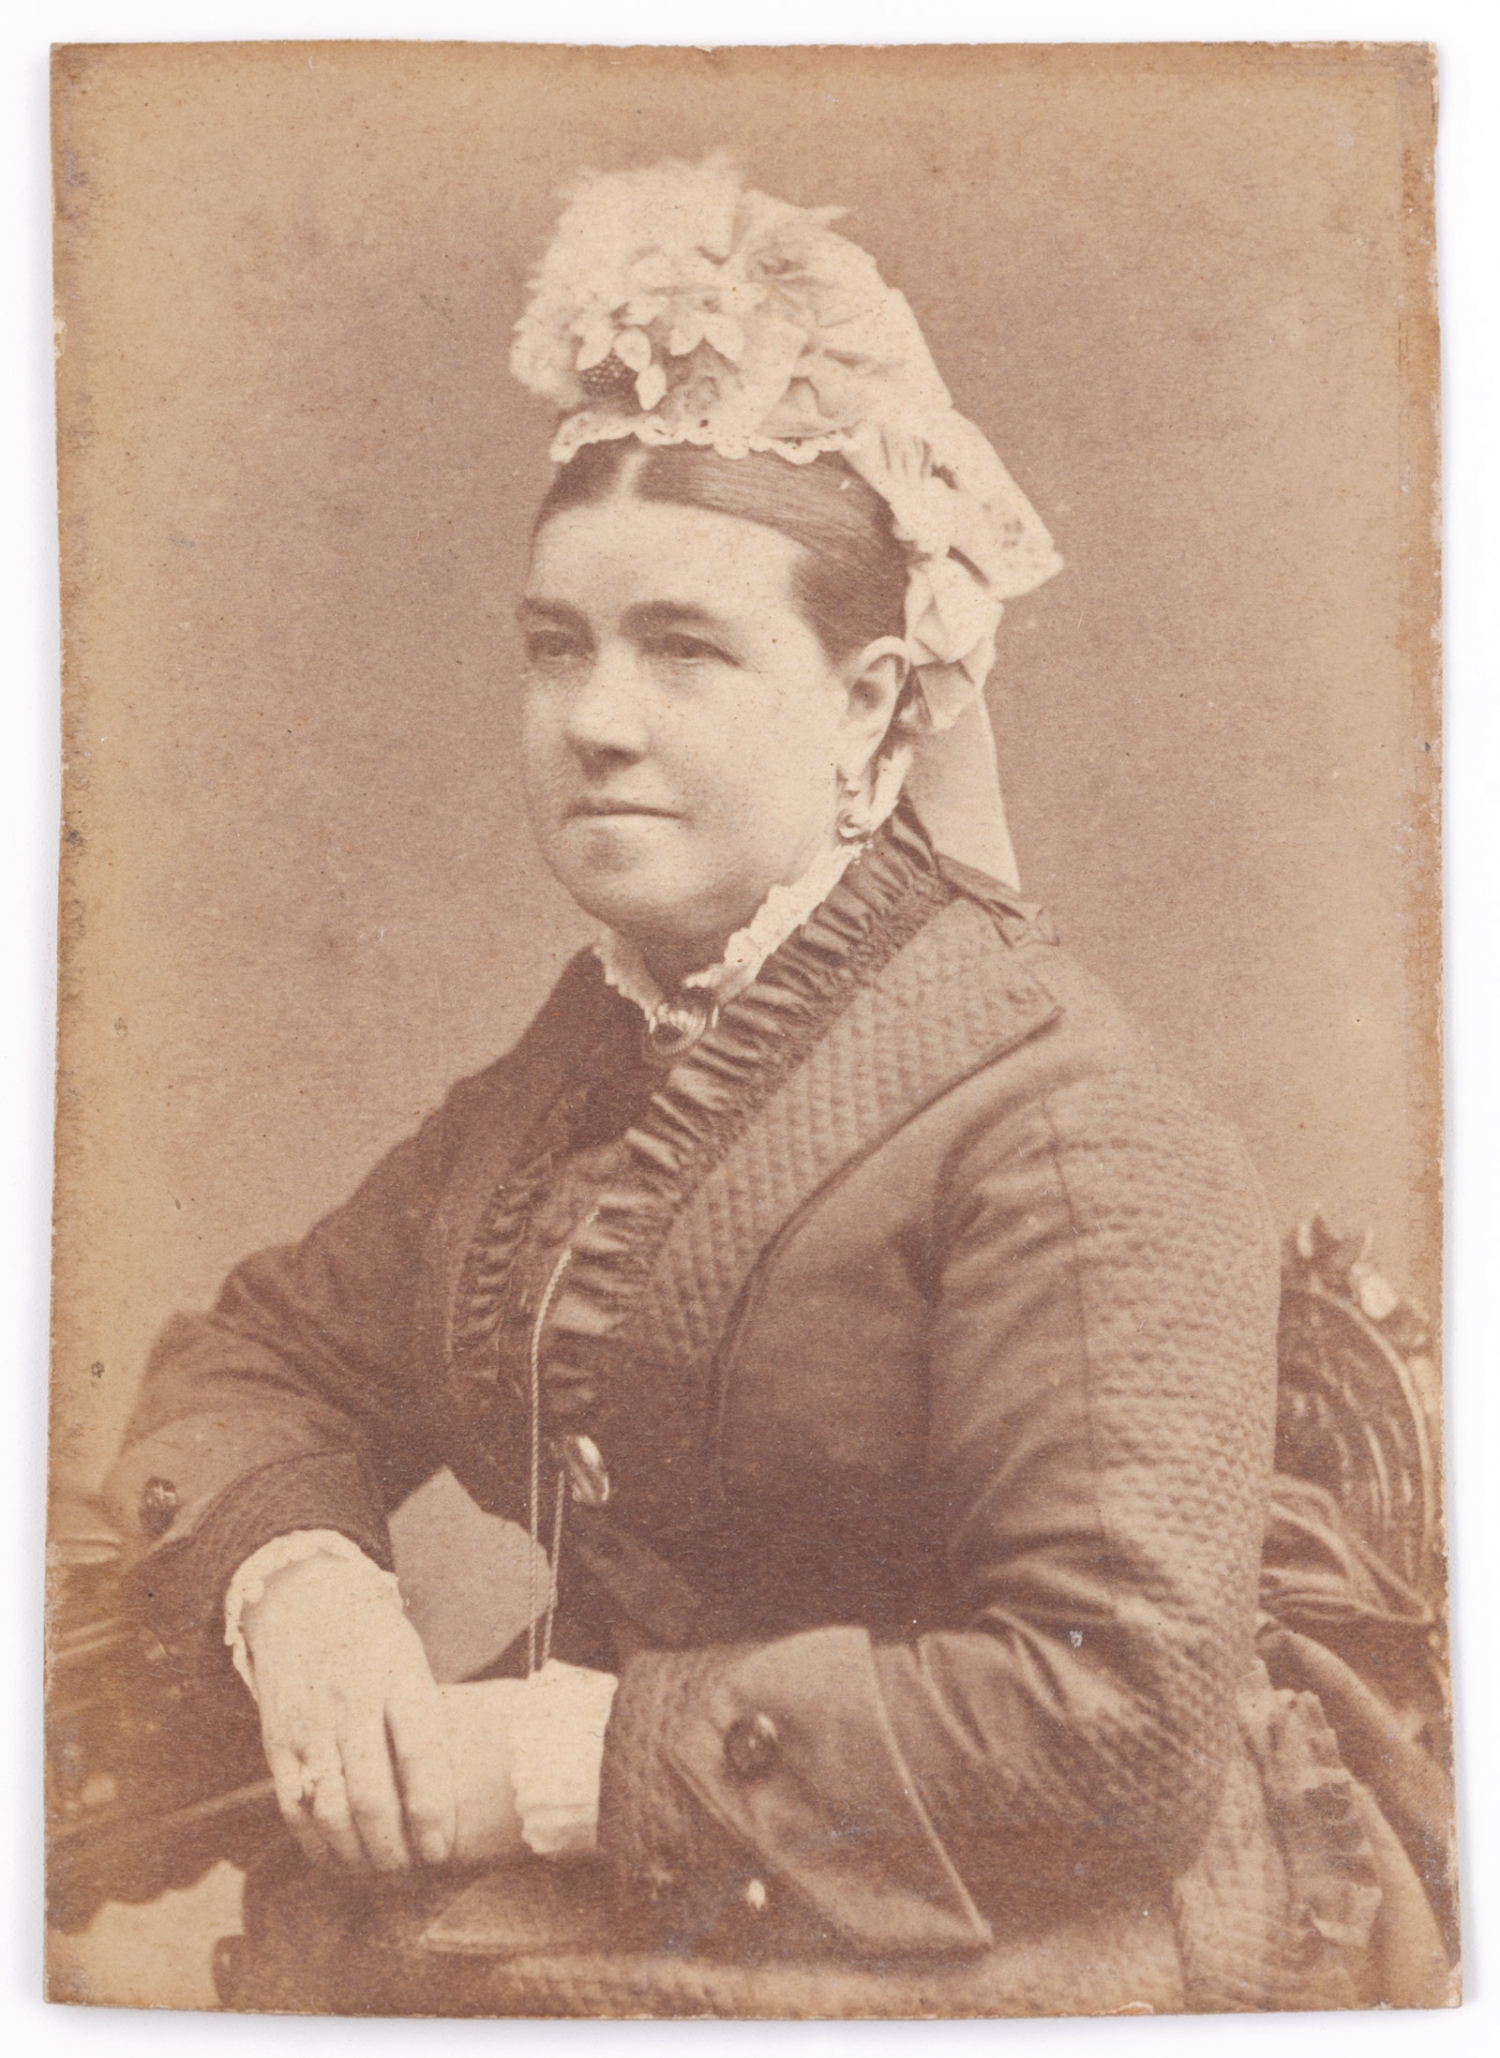 A portrait photograph of Hannah Rouse in mid Victorian costume with a long sleeved jacket with quilted sleeves and lapels and a frill down the front. Her hair is parted severely down the centre and she wears an elaborate lace cap topped with ribbons and a